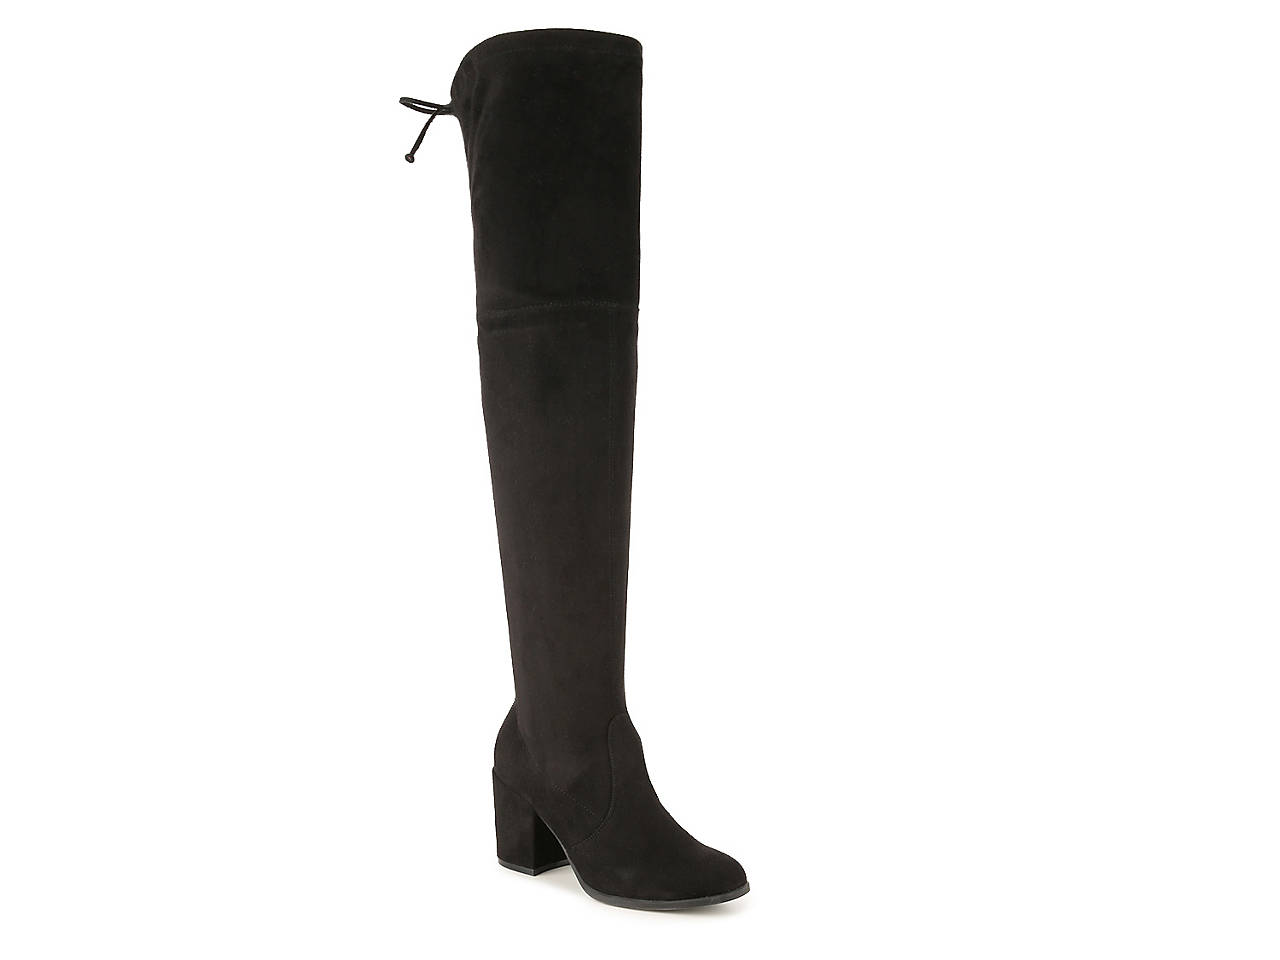 8d799f227fa Dedrii Over The Knee Boot